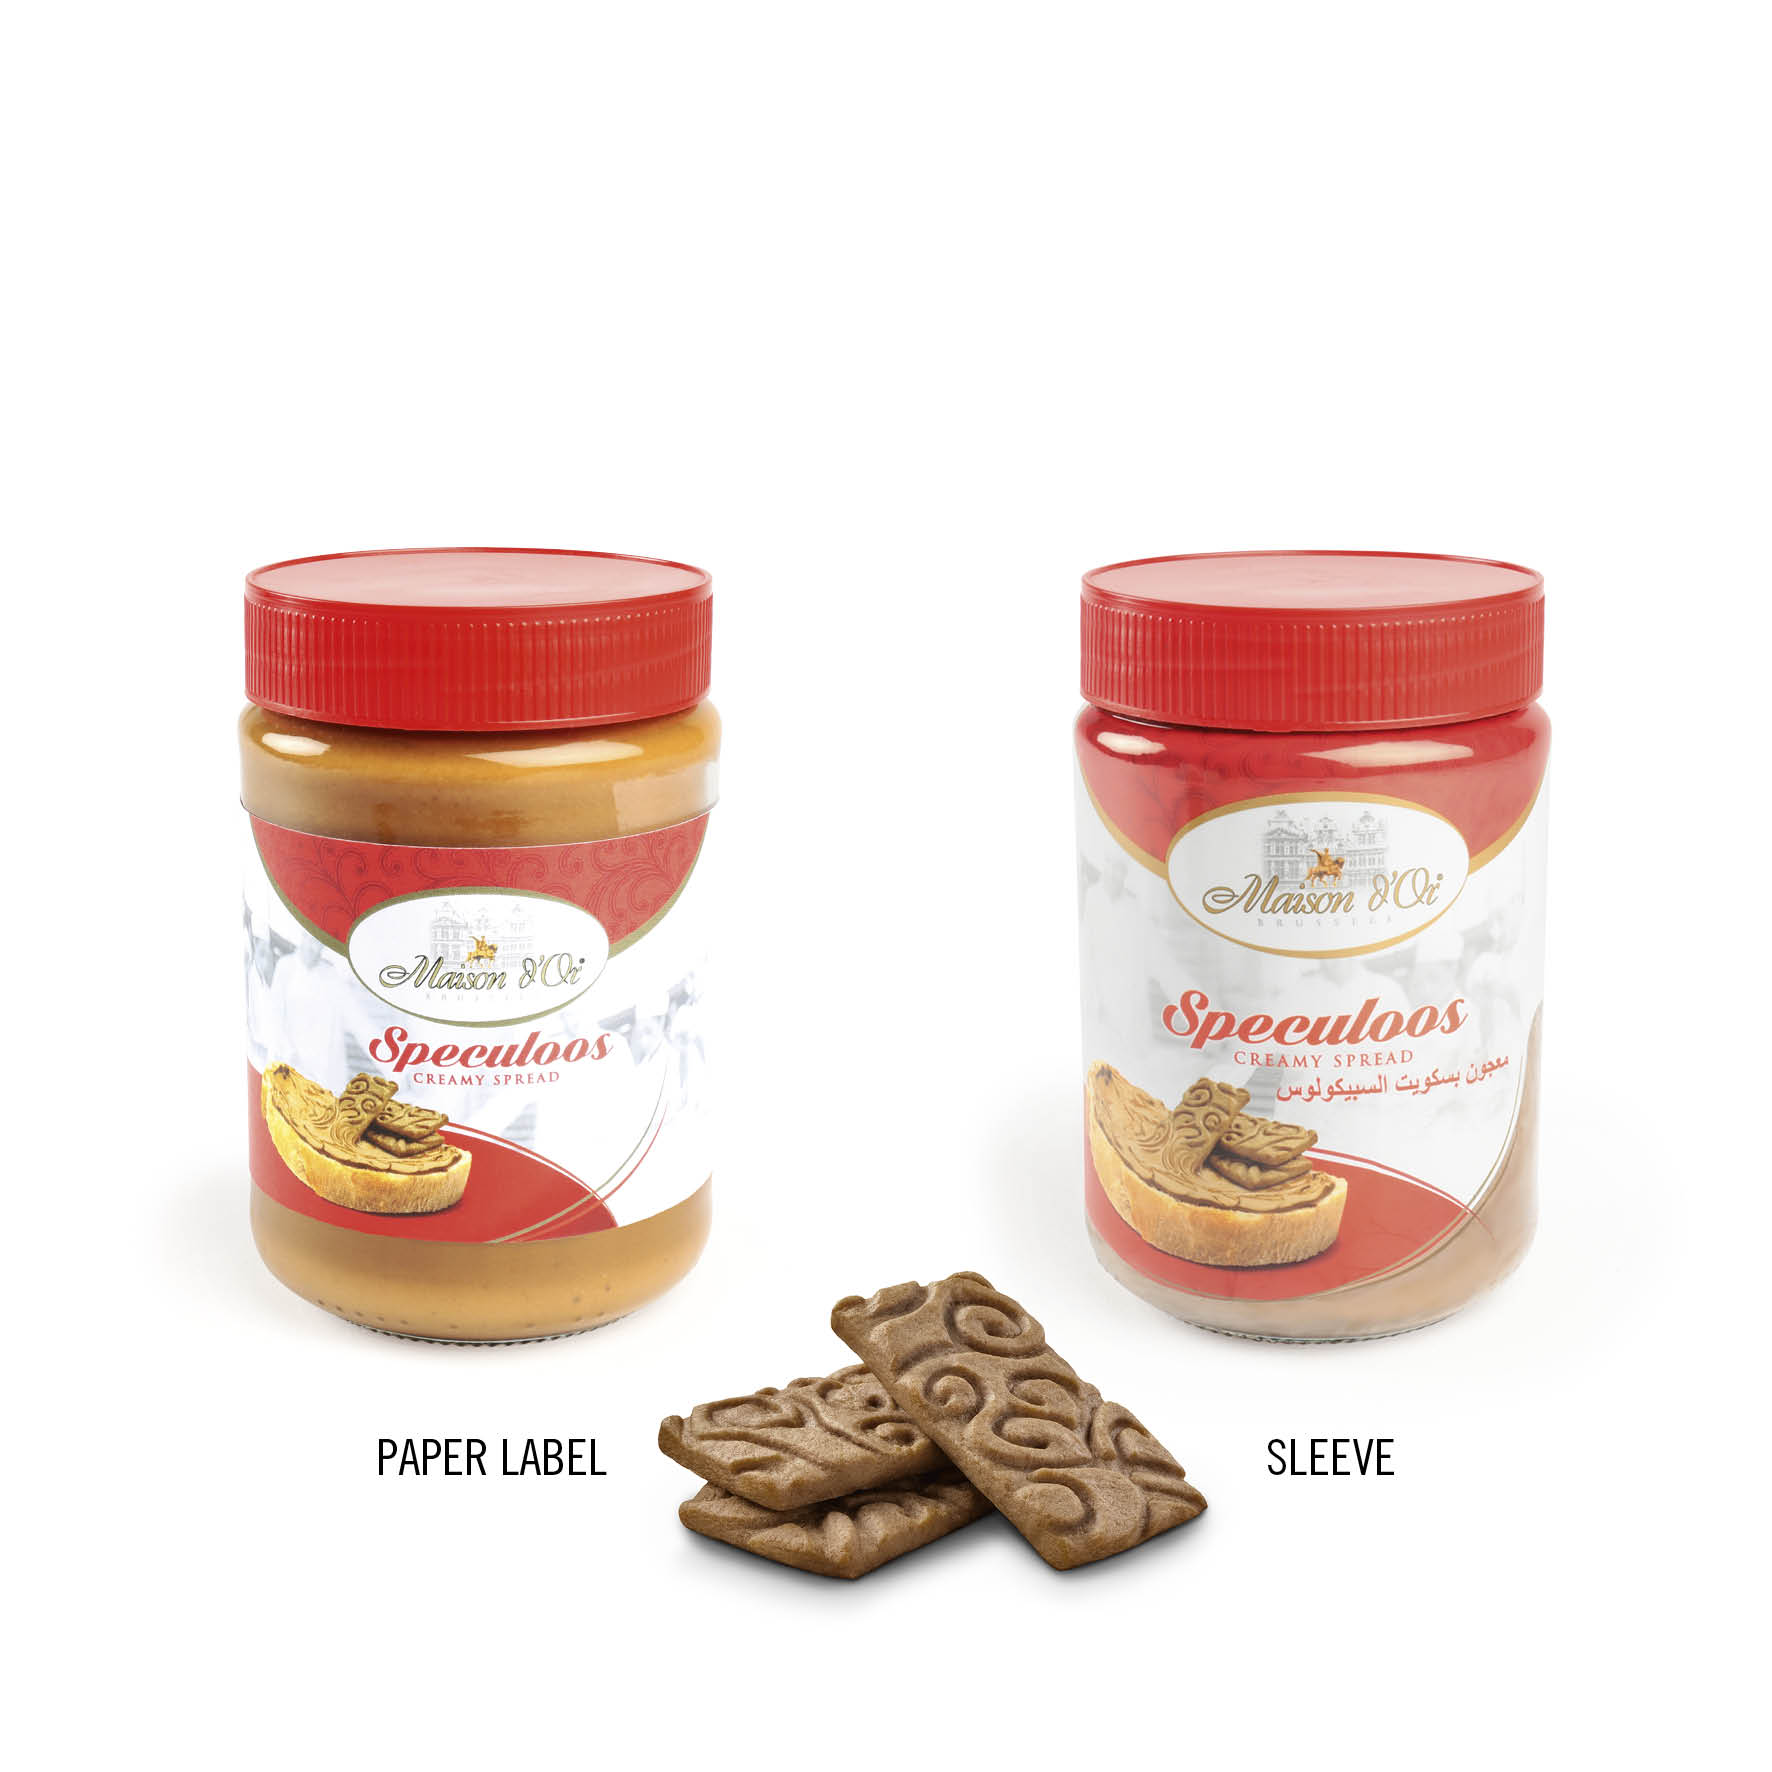 Lion Products Maison D'Or Balc Biscuits à la carte Speculoos Sleeve Foil Single pack Sleeve 150g Sleeve 300g Bulk sleeve 250g Cinnamon Speculoos spices Caramel biscuit BRC IFS Belgium's finest recipe Bonheiden Czech Republic Container transport export Worldwide Truck transport Speculoos powder Speculoos crumble Private label Brand Sticker Label Create own design Spread Speculoos spread Pistachio Creamy Crunchy Nerro Jar Paper label 400g spread 200g spread Cookie powder Buckets 5kg bucket 20kg bucket 250g spread Tuiles Assorted chocolate biscuit rolls chocolate Filled biscuit rolls hazelnuts Les Briques Mini tablet Food service Assortment Biscuit cookie